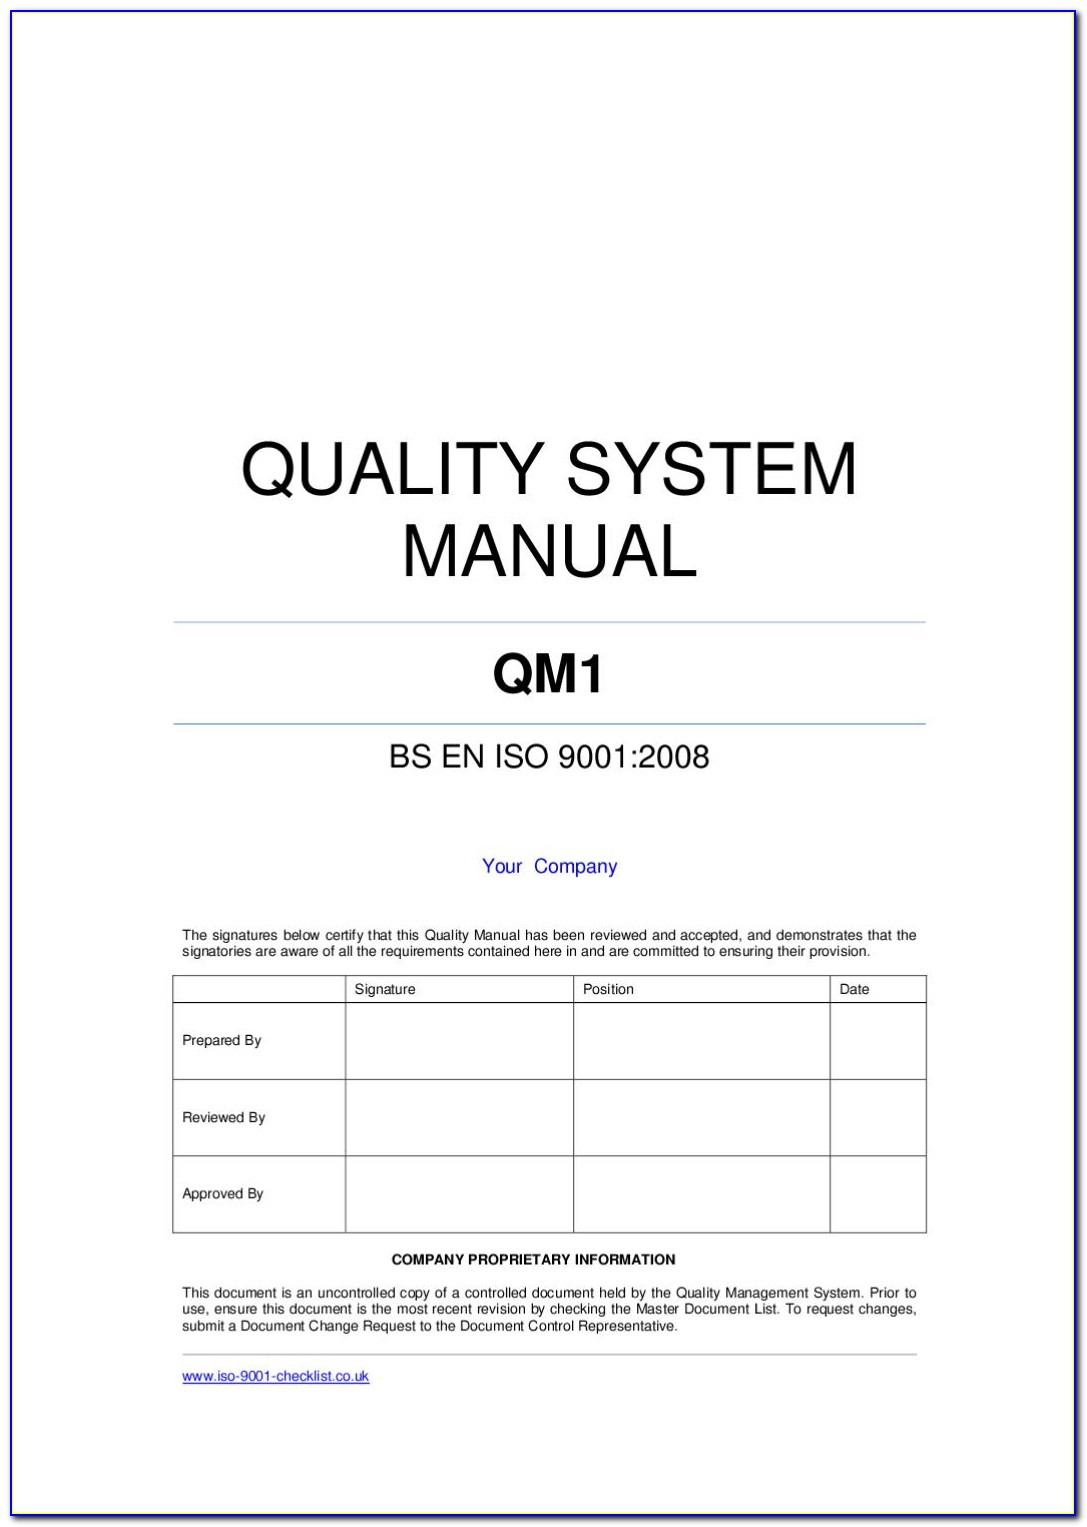 Iso 9001 Quality Manual Template Free Download